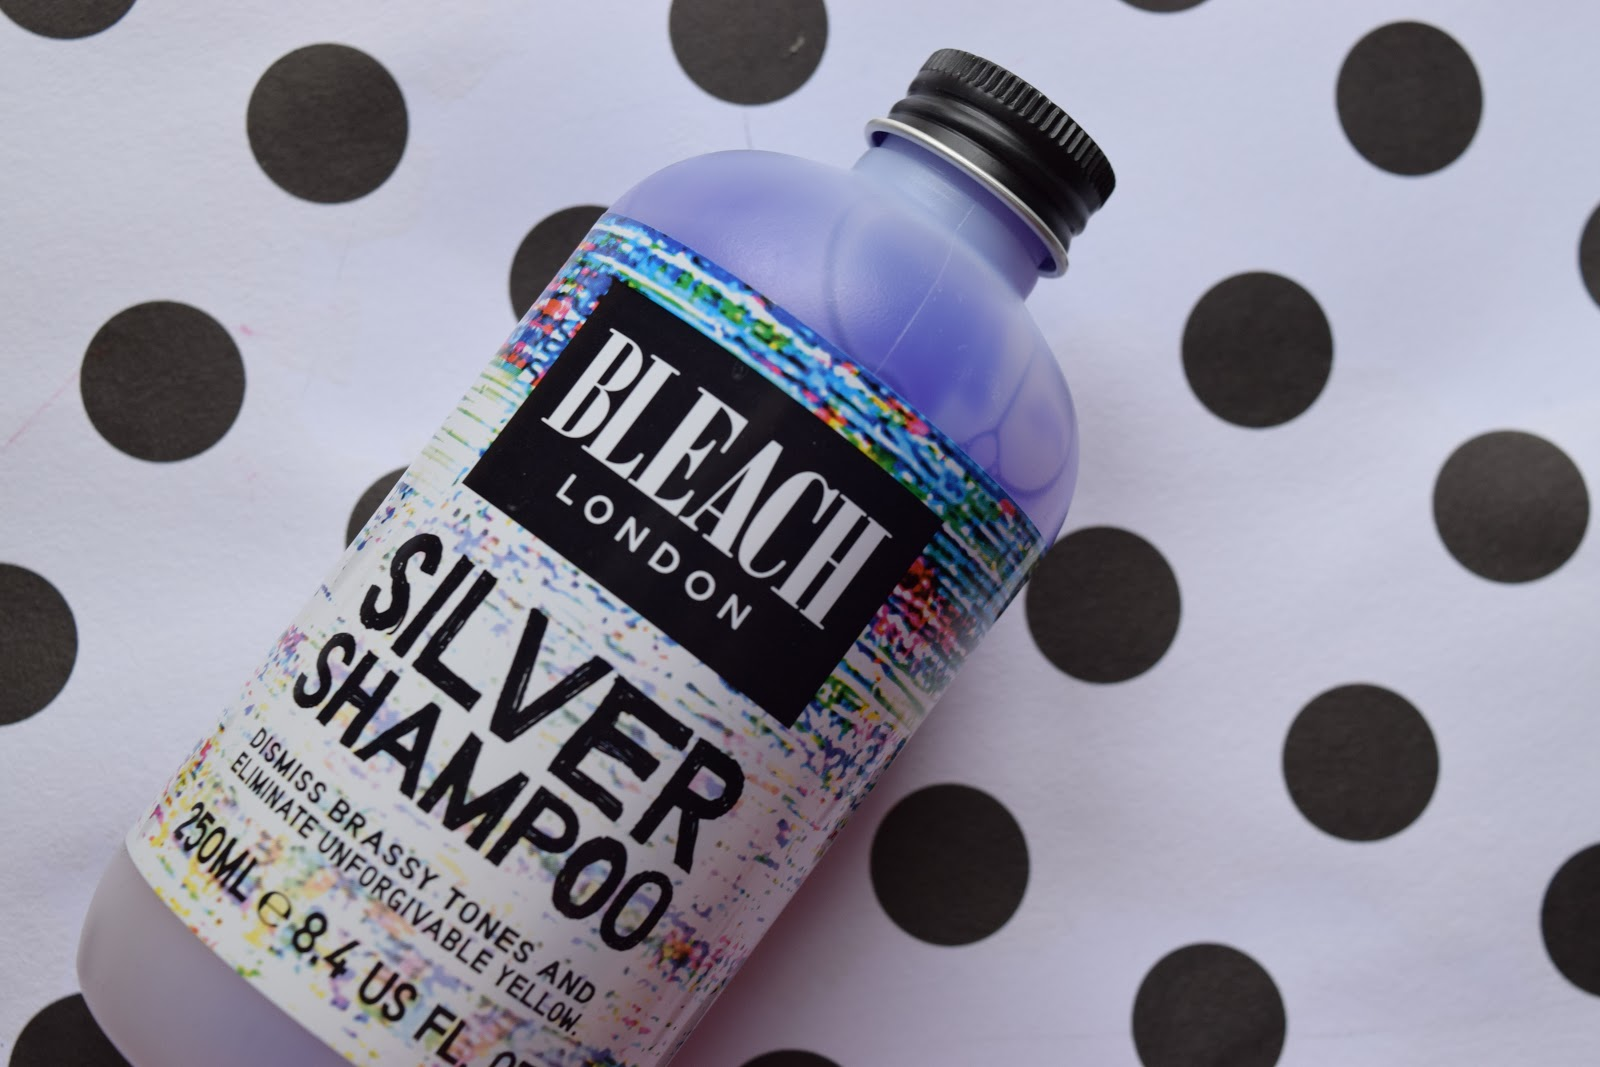 Bleach London silver shampoo empties